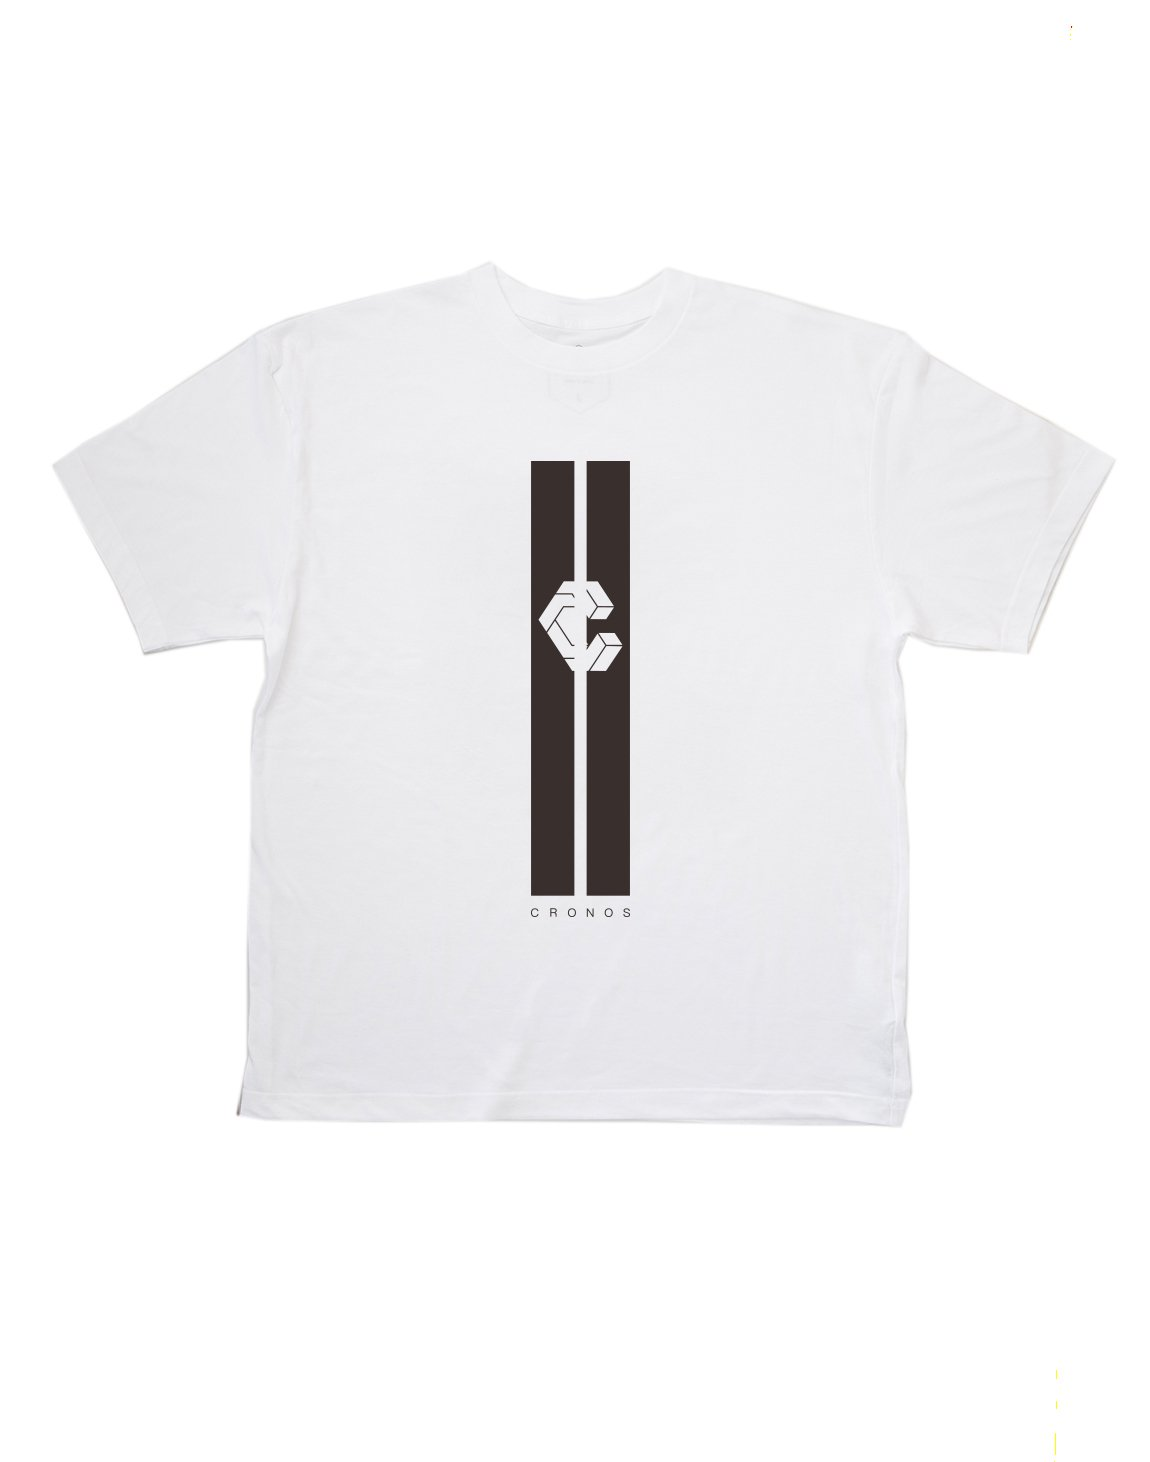 <img class='new_mark_img1' src='https://img.shop-pro.jp/img/new/icons1.gif' style='border:none;display:inline;margin:0px;padding:0px;width:auto;' />CRONOS STRIPE LOGO T-SHIRT【WHITE】